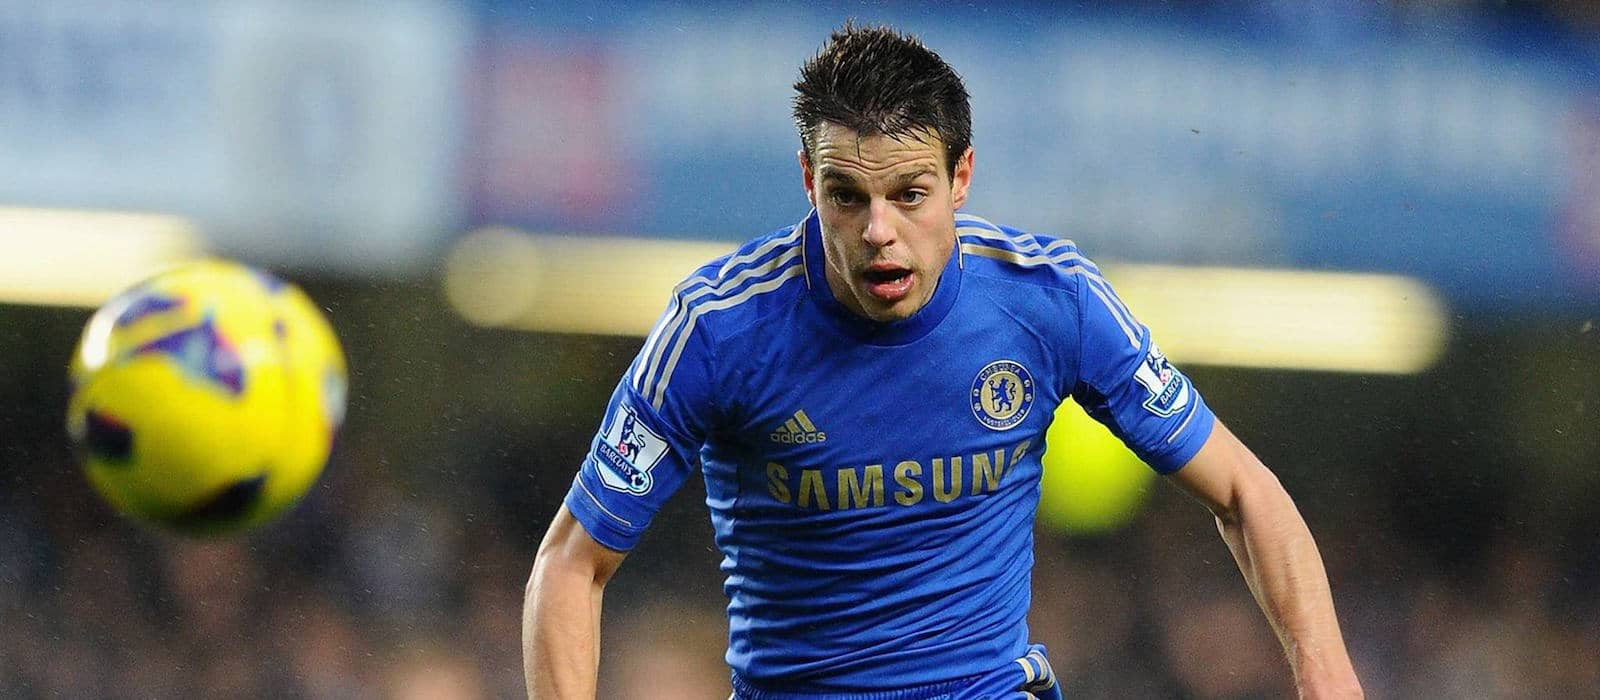 Manchester United manager Jose Mourinho interested in signing Chelsea full-back Cesar Azpilicueta – report